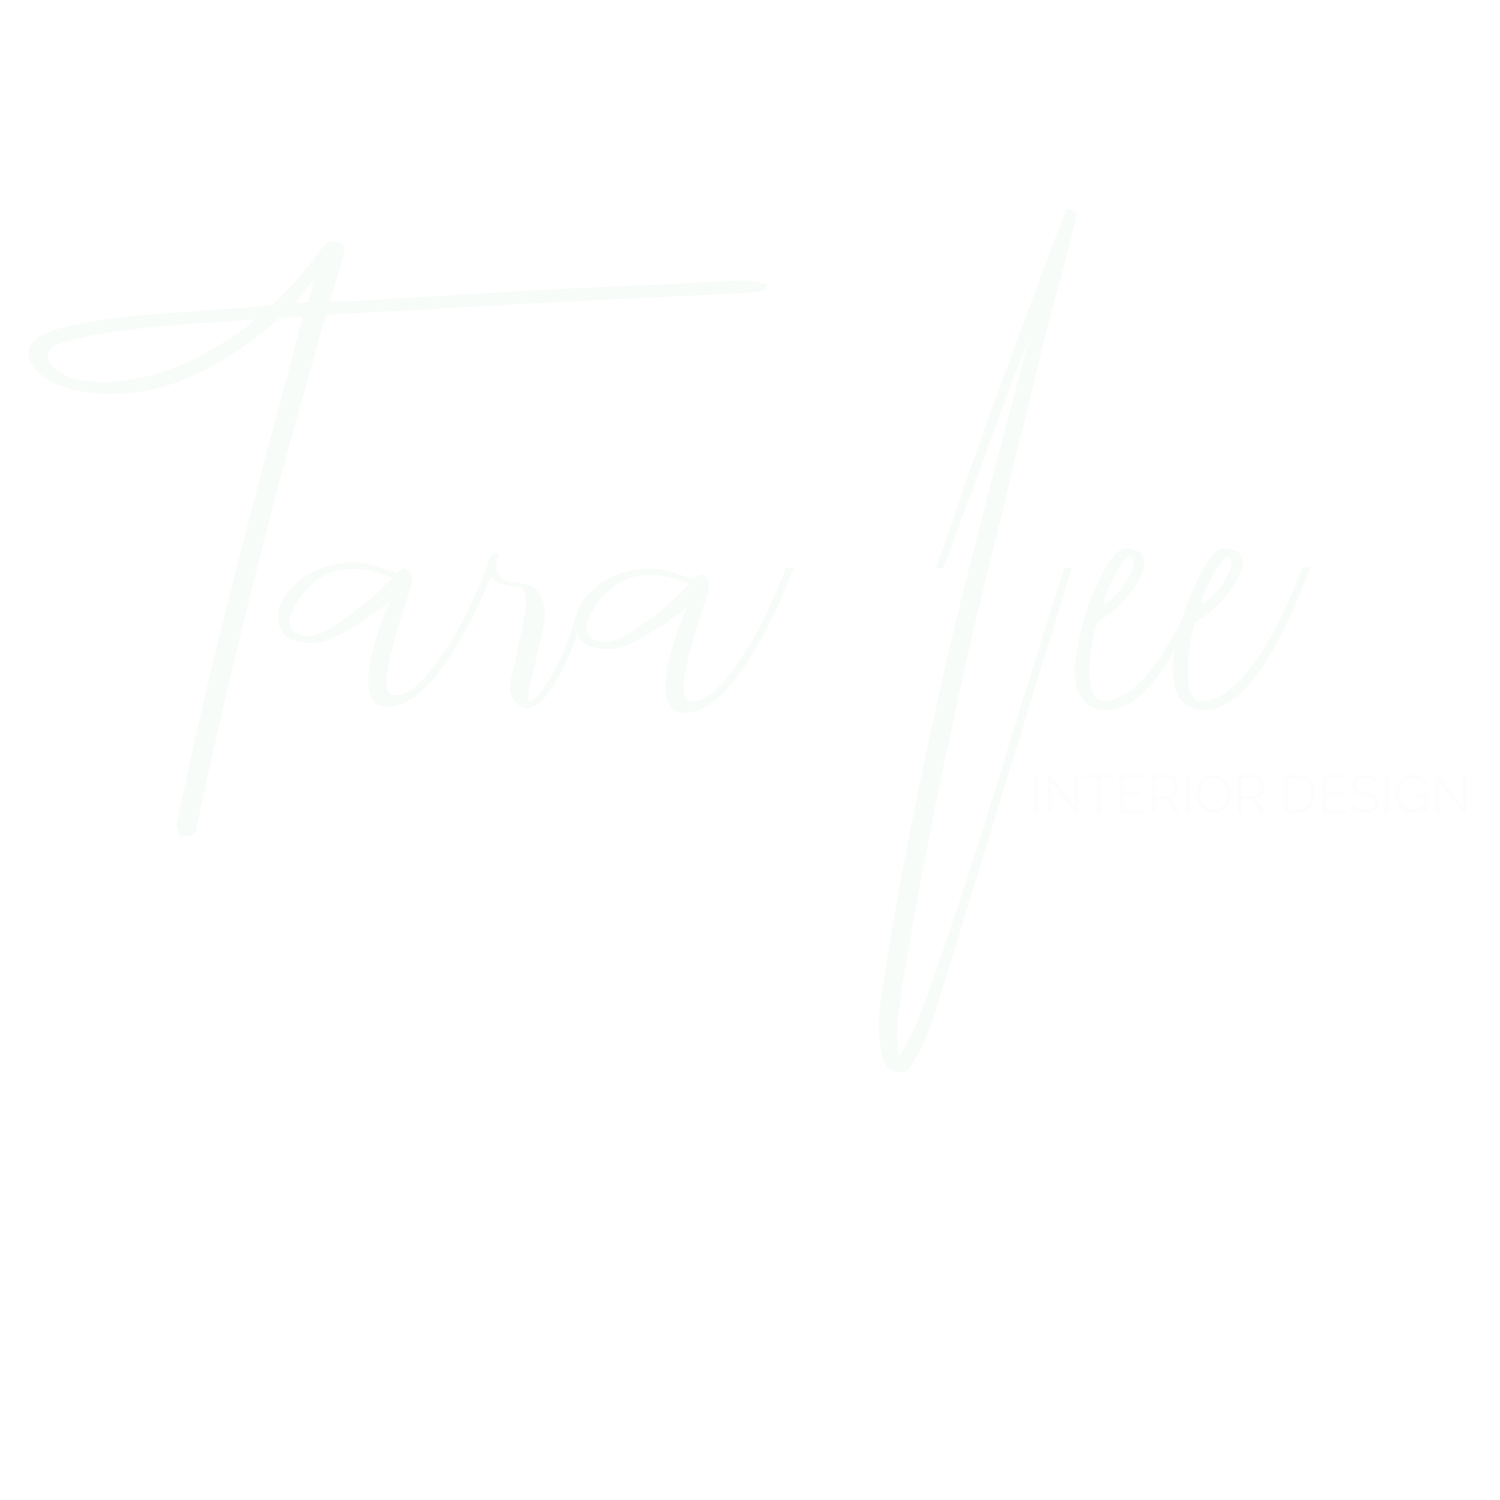 Tara Lee Interior Design